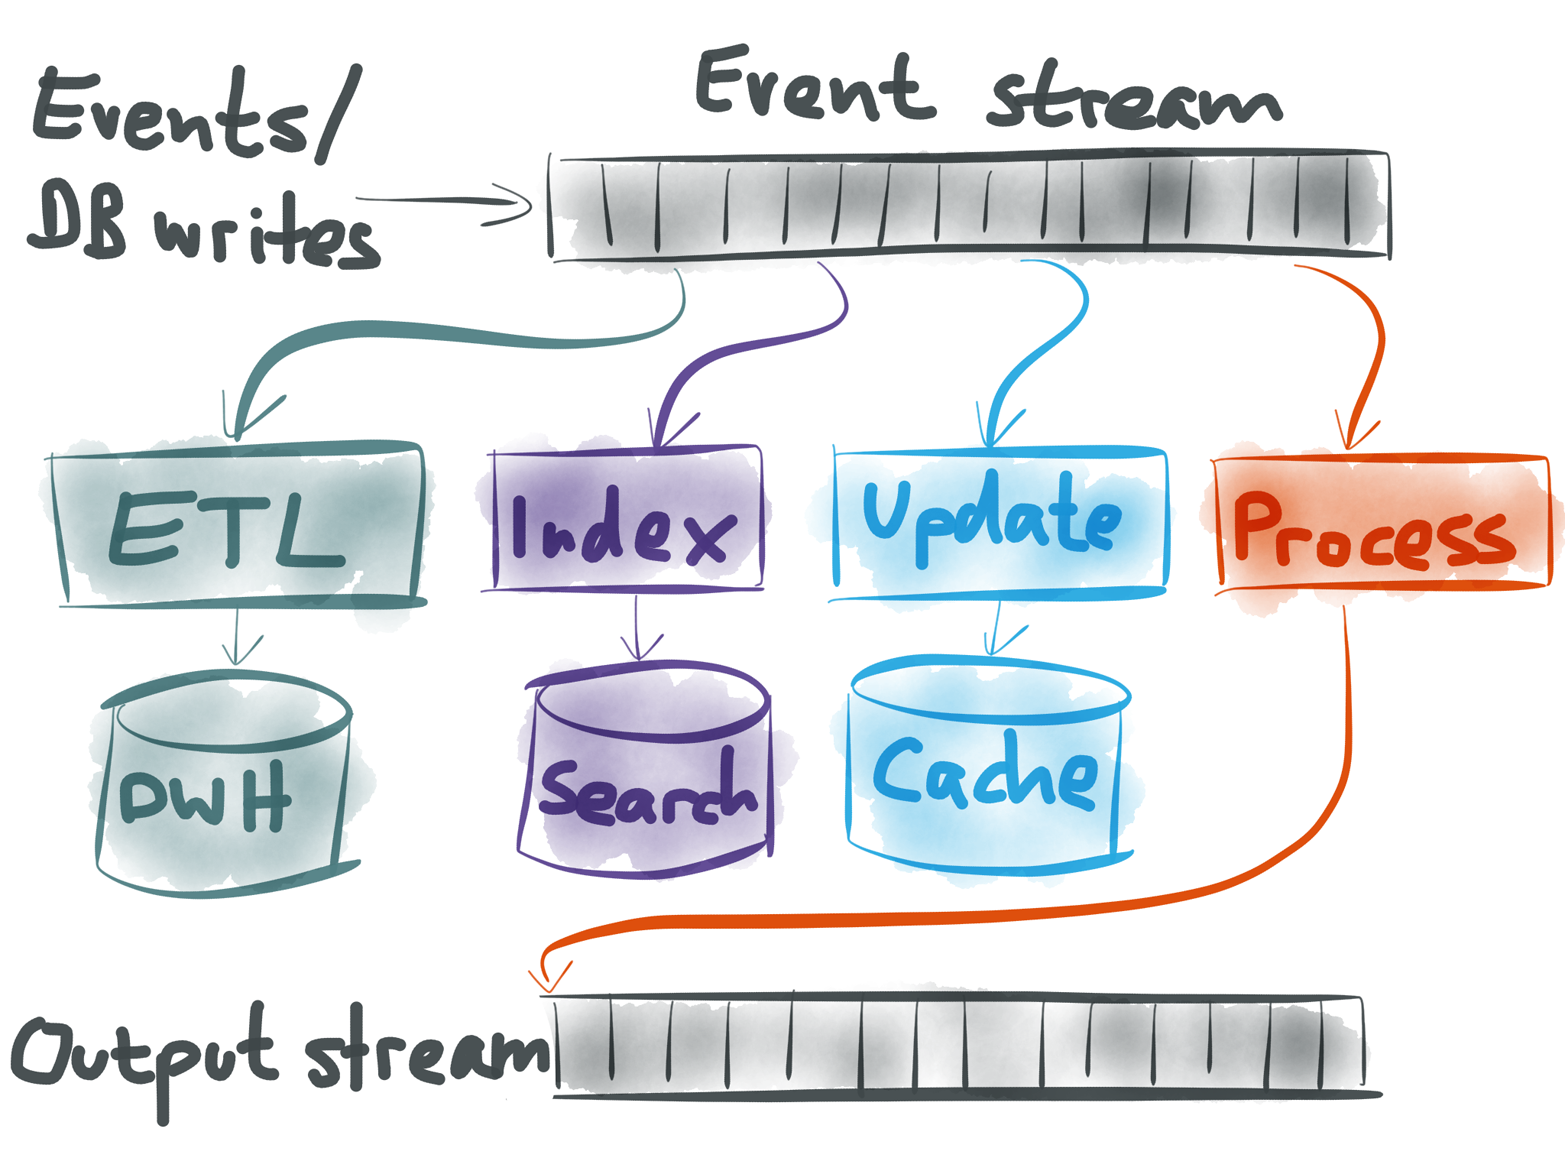 Several possibilities for using an event stream.